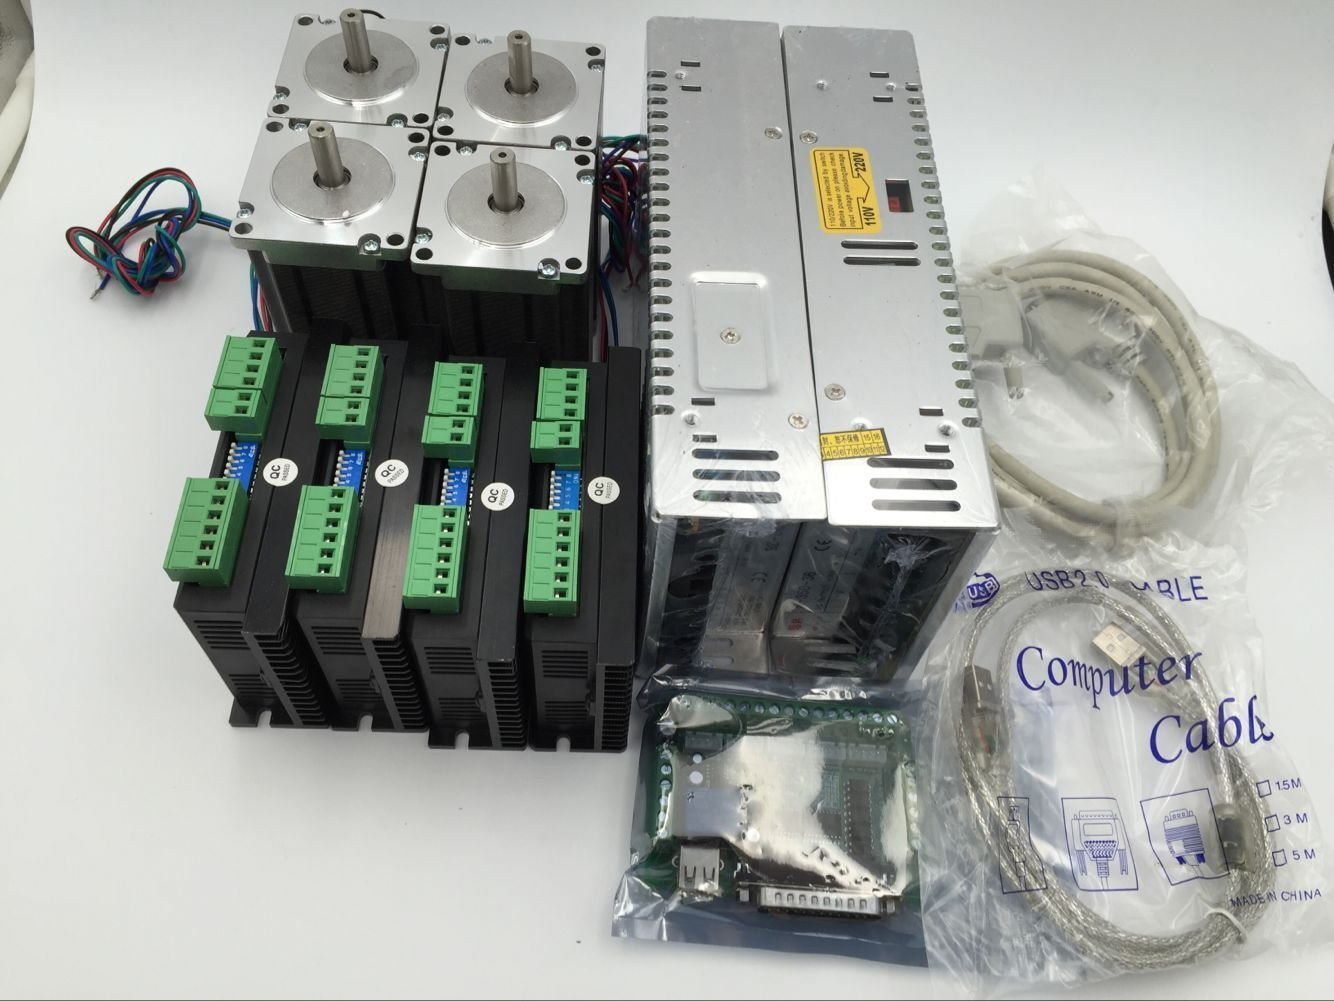 CNC Stepper Motor Kit 4Axis 4pcs Nema34 Stepper Motor & 4pcs Motor Driver 24~110VDC AC18-80V & 4pcs 400W Power Supply & Breakout Board & Cable